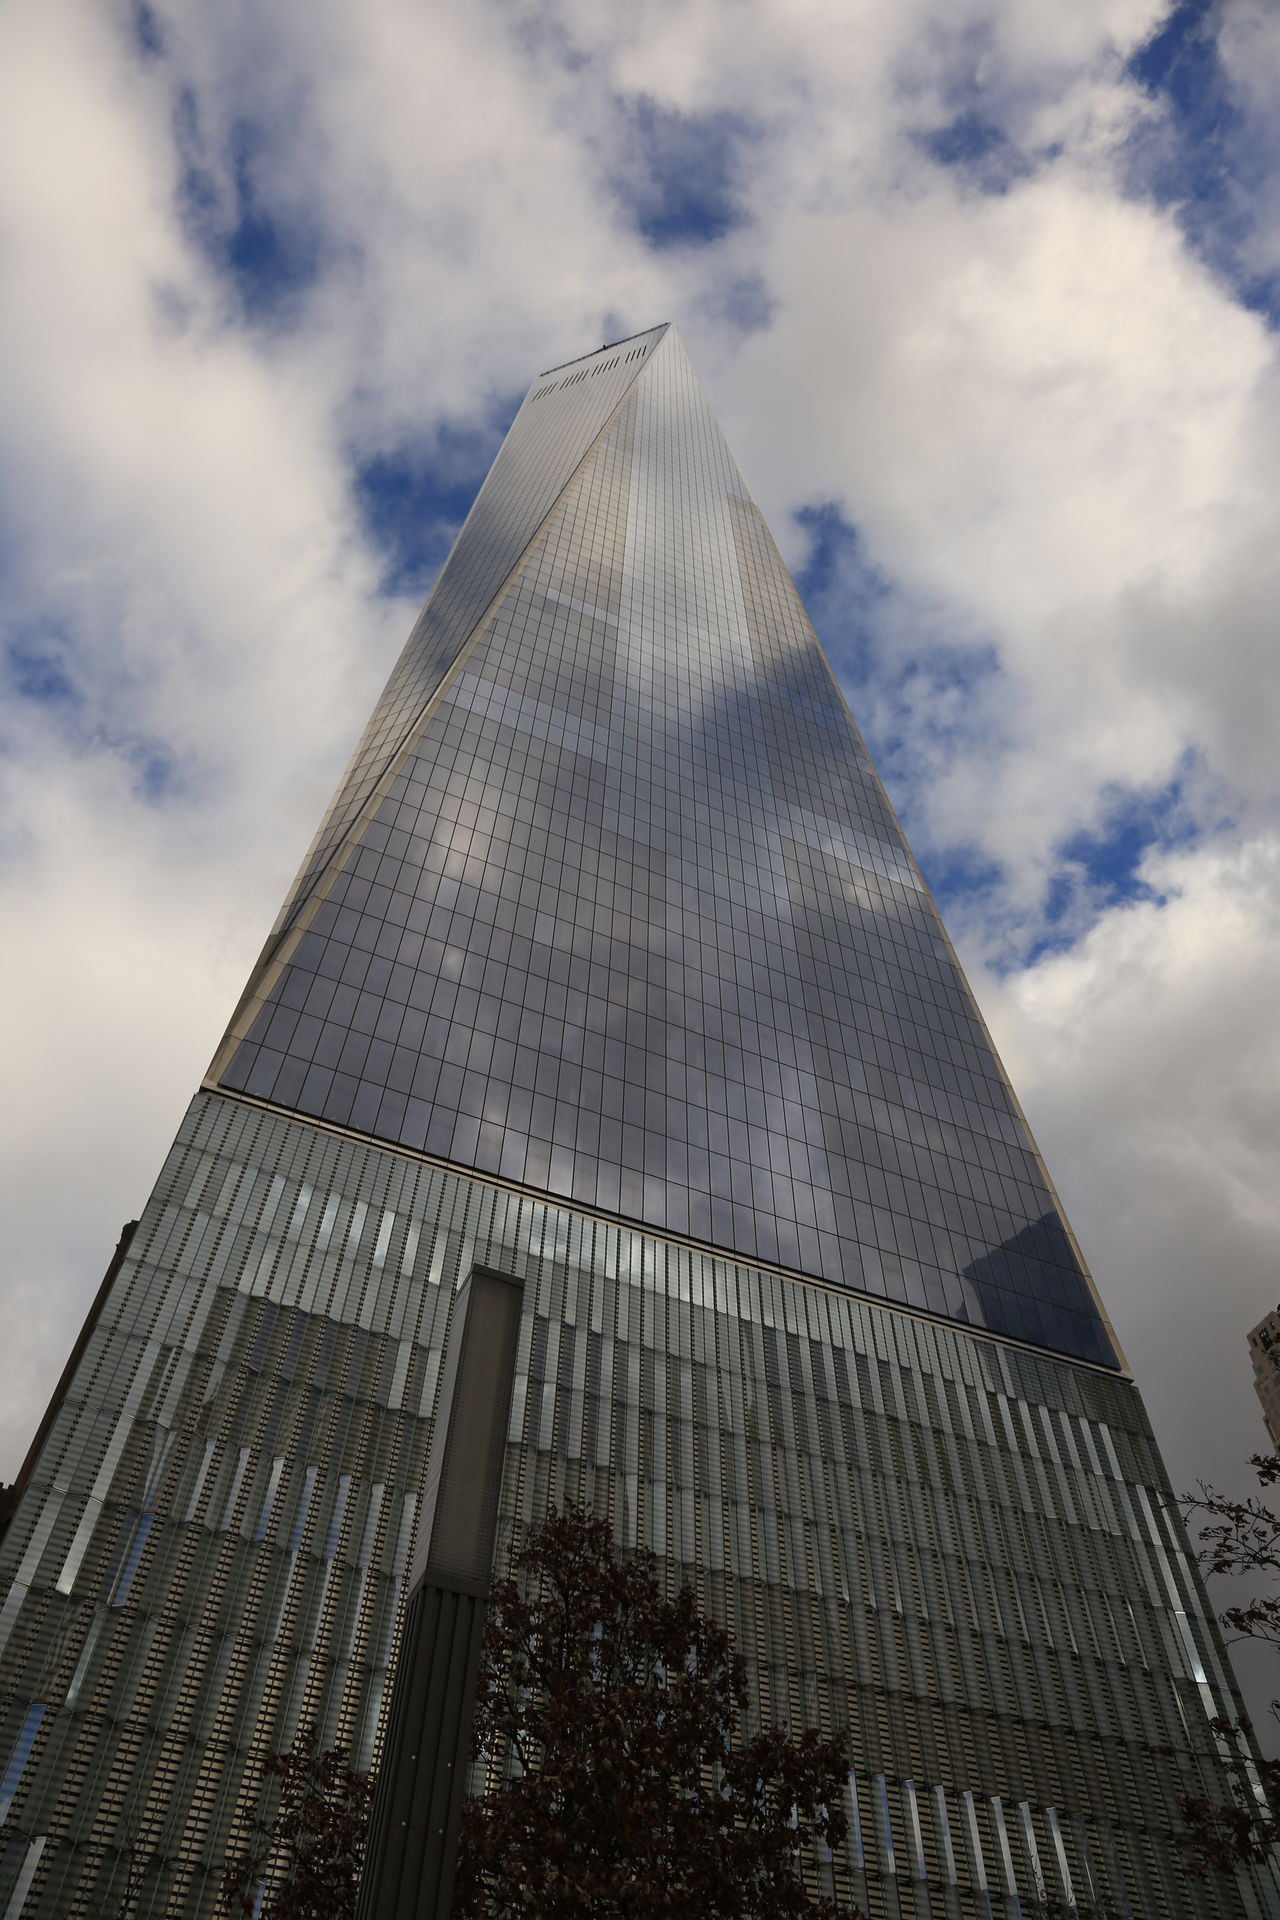 Architecture Building Exterior Built Structure City Cloud - Sky Day Glass Building Glass Building New York City Low Angle View Mirror Reflection Modern New York New York City No People One World Trade One World Trade Center Outdoors Reflection Sky Skyscraper Thecitylight